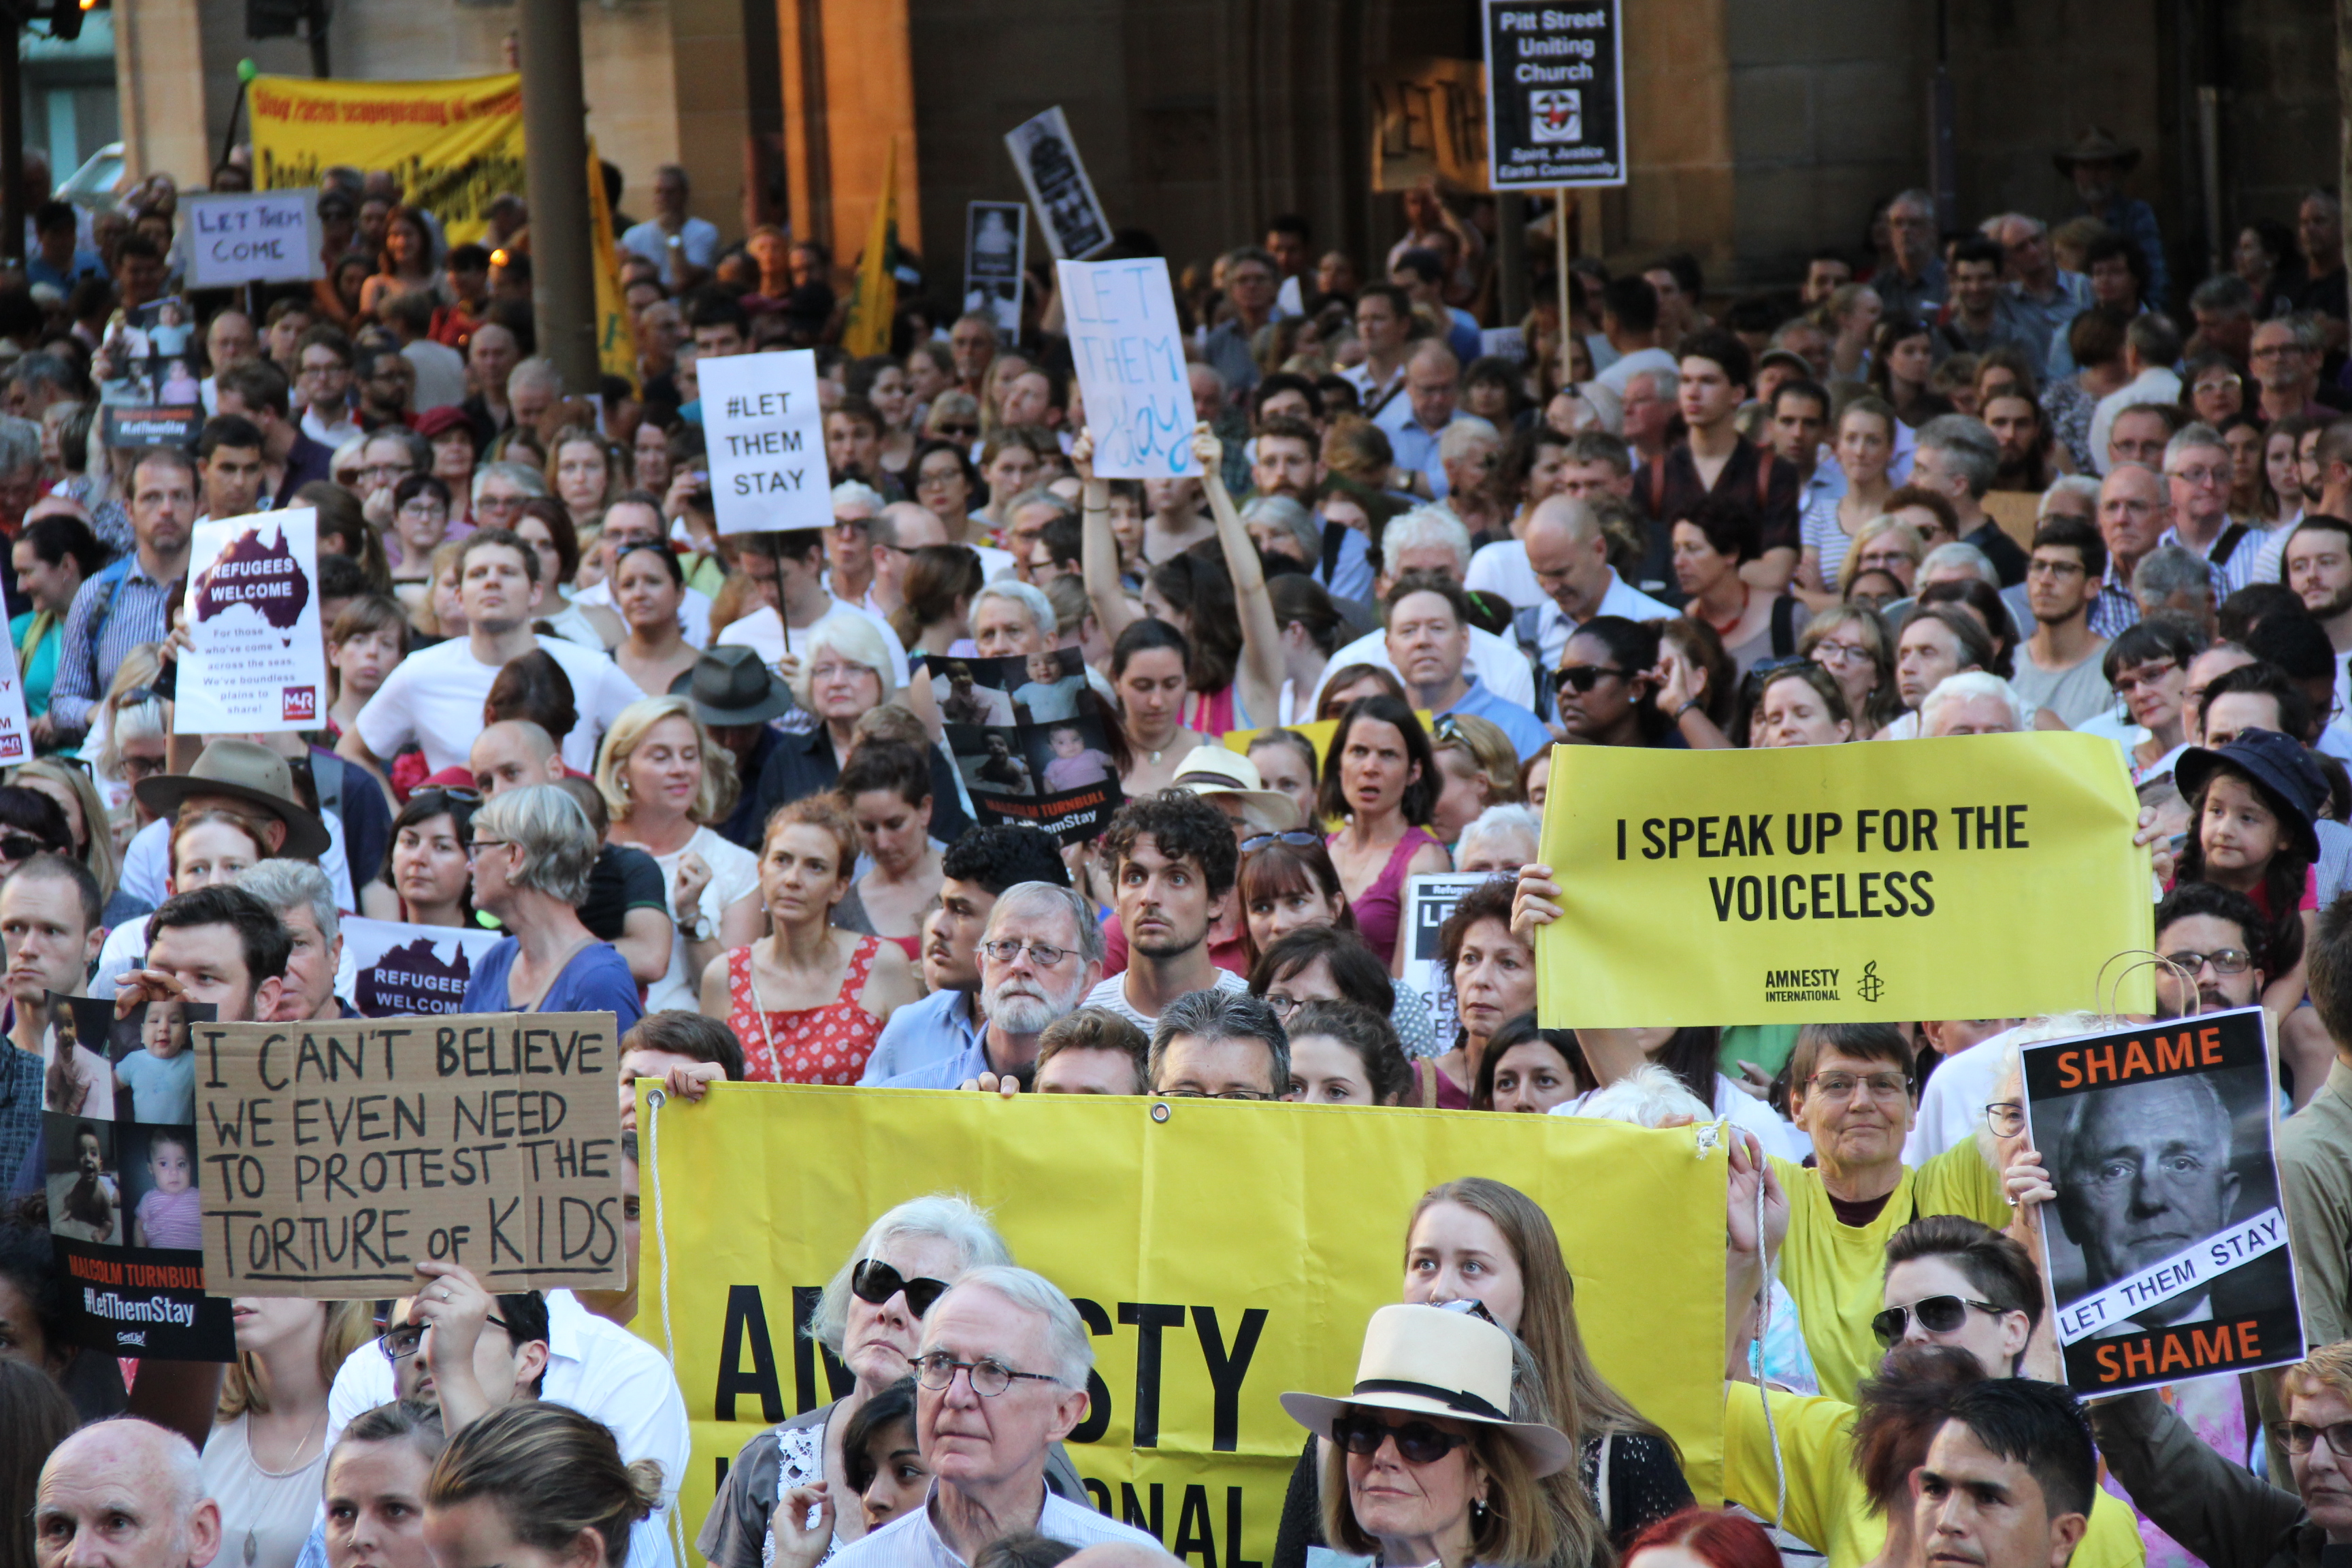 #LetThemStay refugee rally in Sydney in 2016